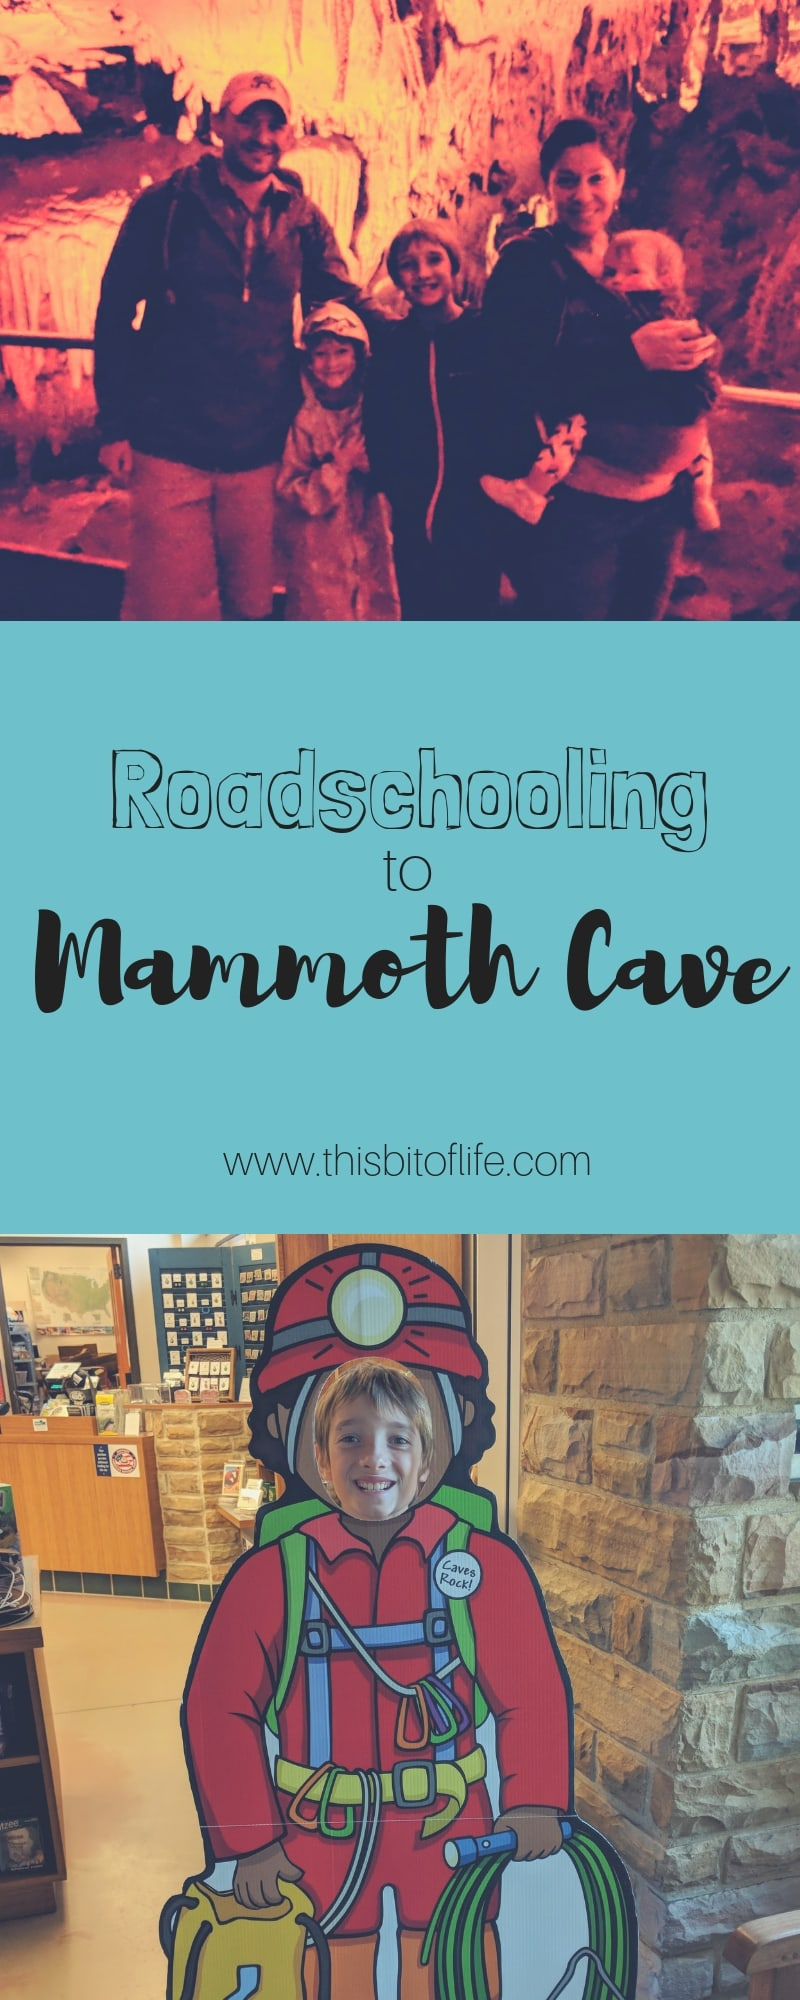 Roadschooling to Mammoth Cave. Homeschool lessons on the road. Traveling to Mammoth Cave as a part of our homeschool studies was the best learning experience! Field trip at it's finest. Add in the Junior Ranger program and your lessons are all set. #homeschooling #roadschooling #traveling #mammothcave #homeschool #homeeducation